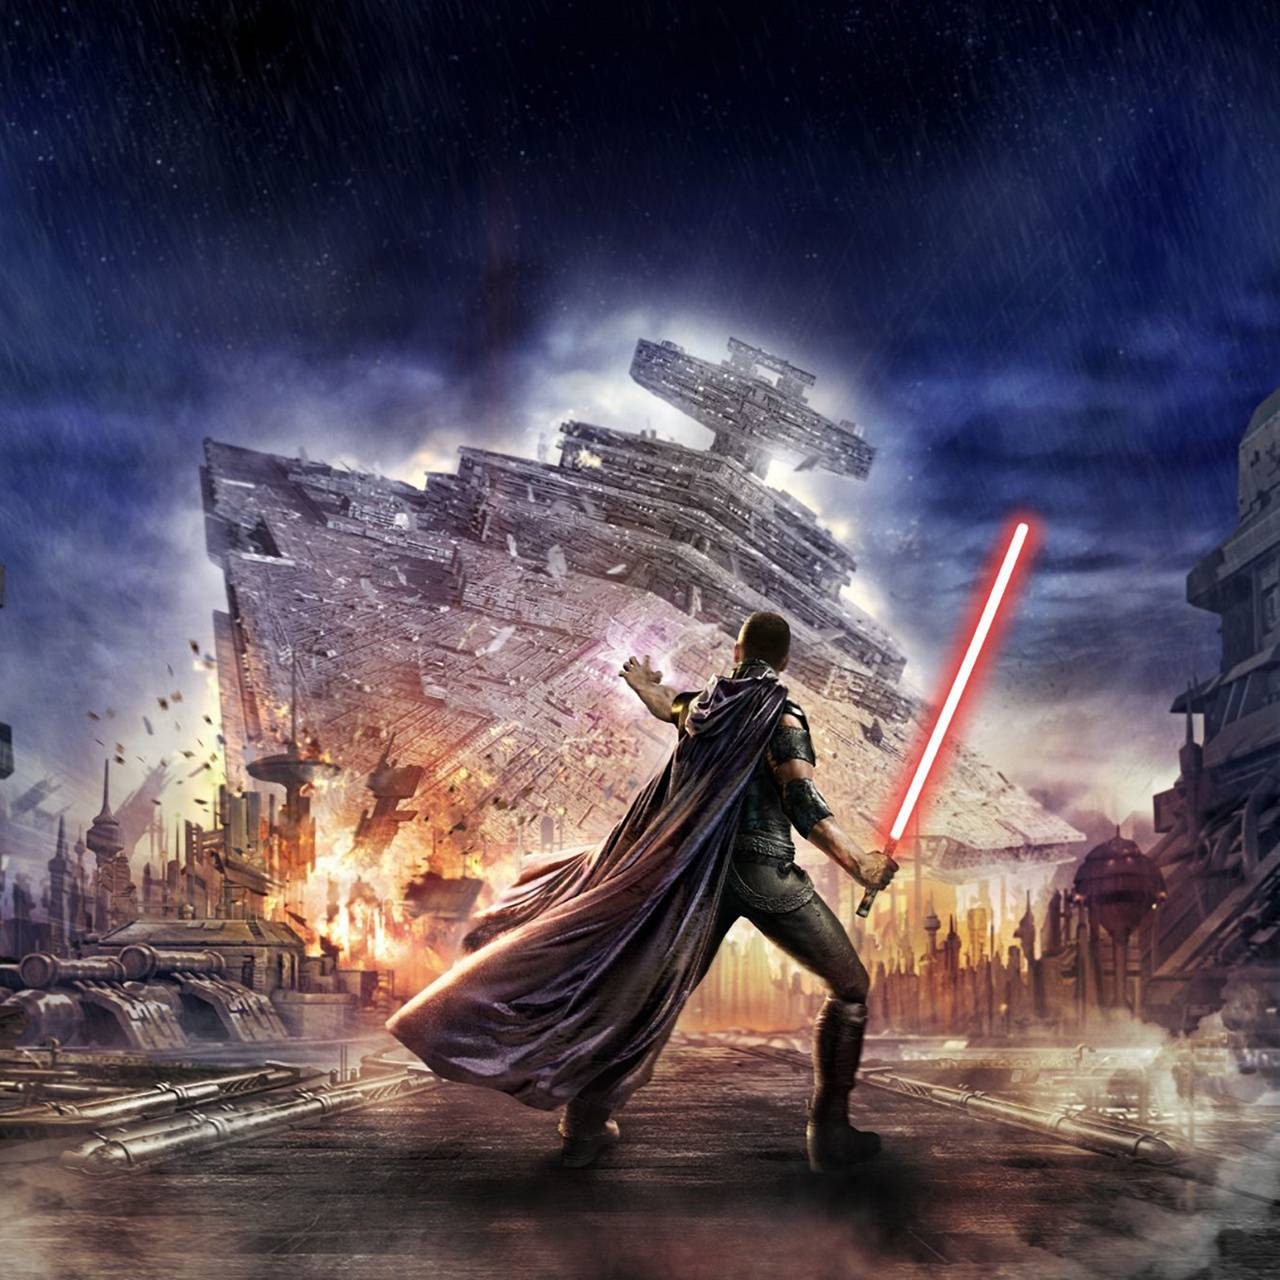 The Force Unleashed Wallpaper By Maniacboy777 03 Free On Zedge